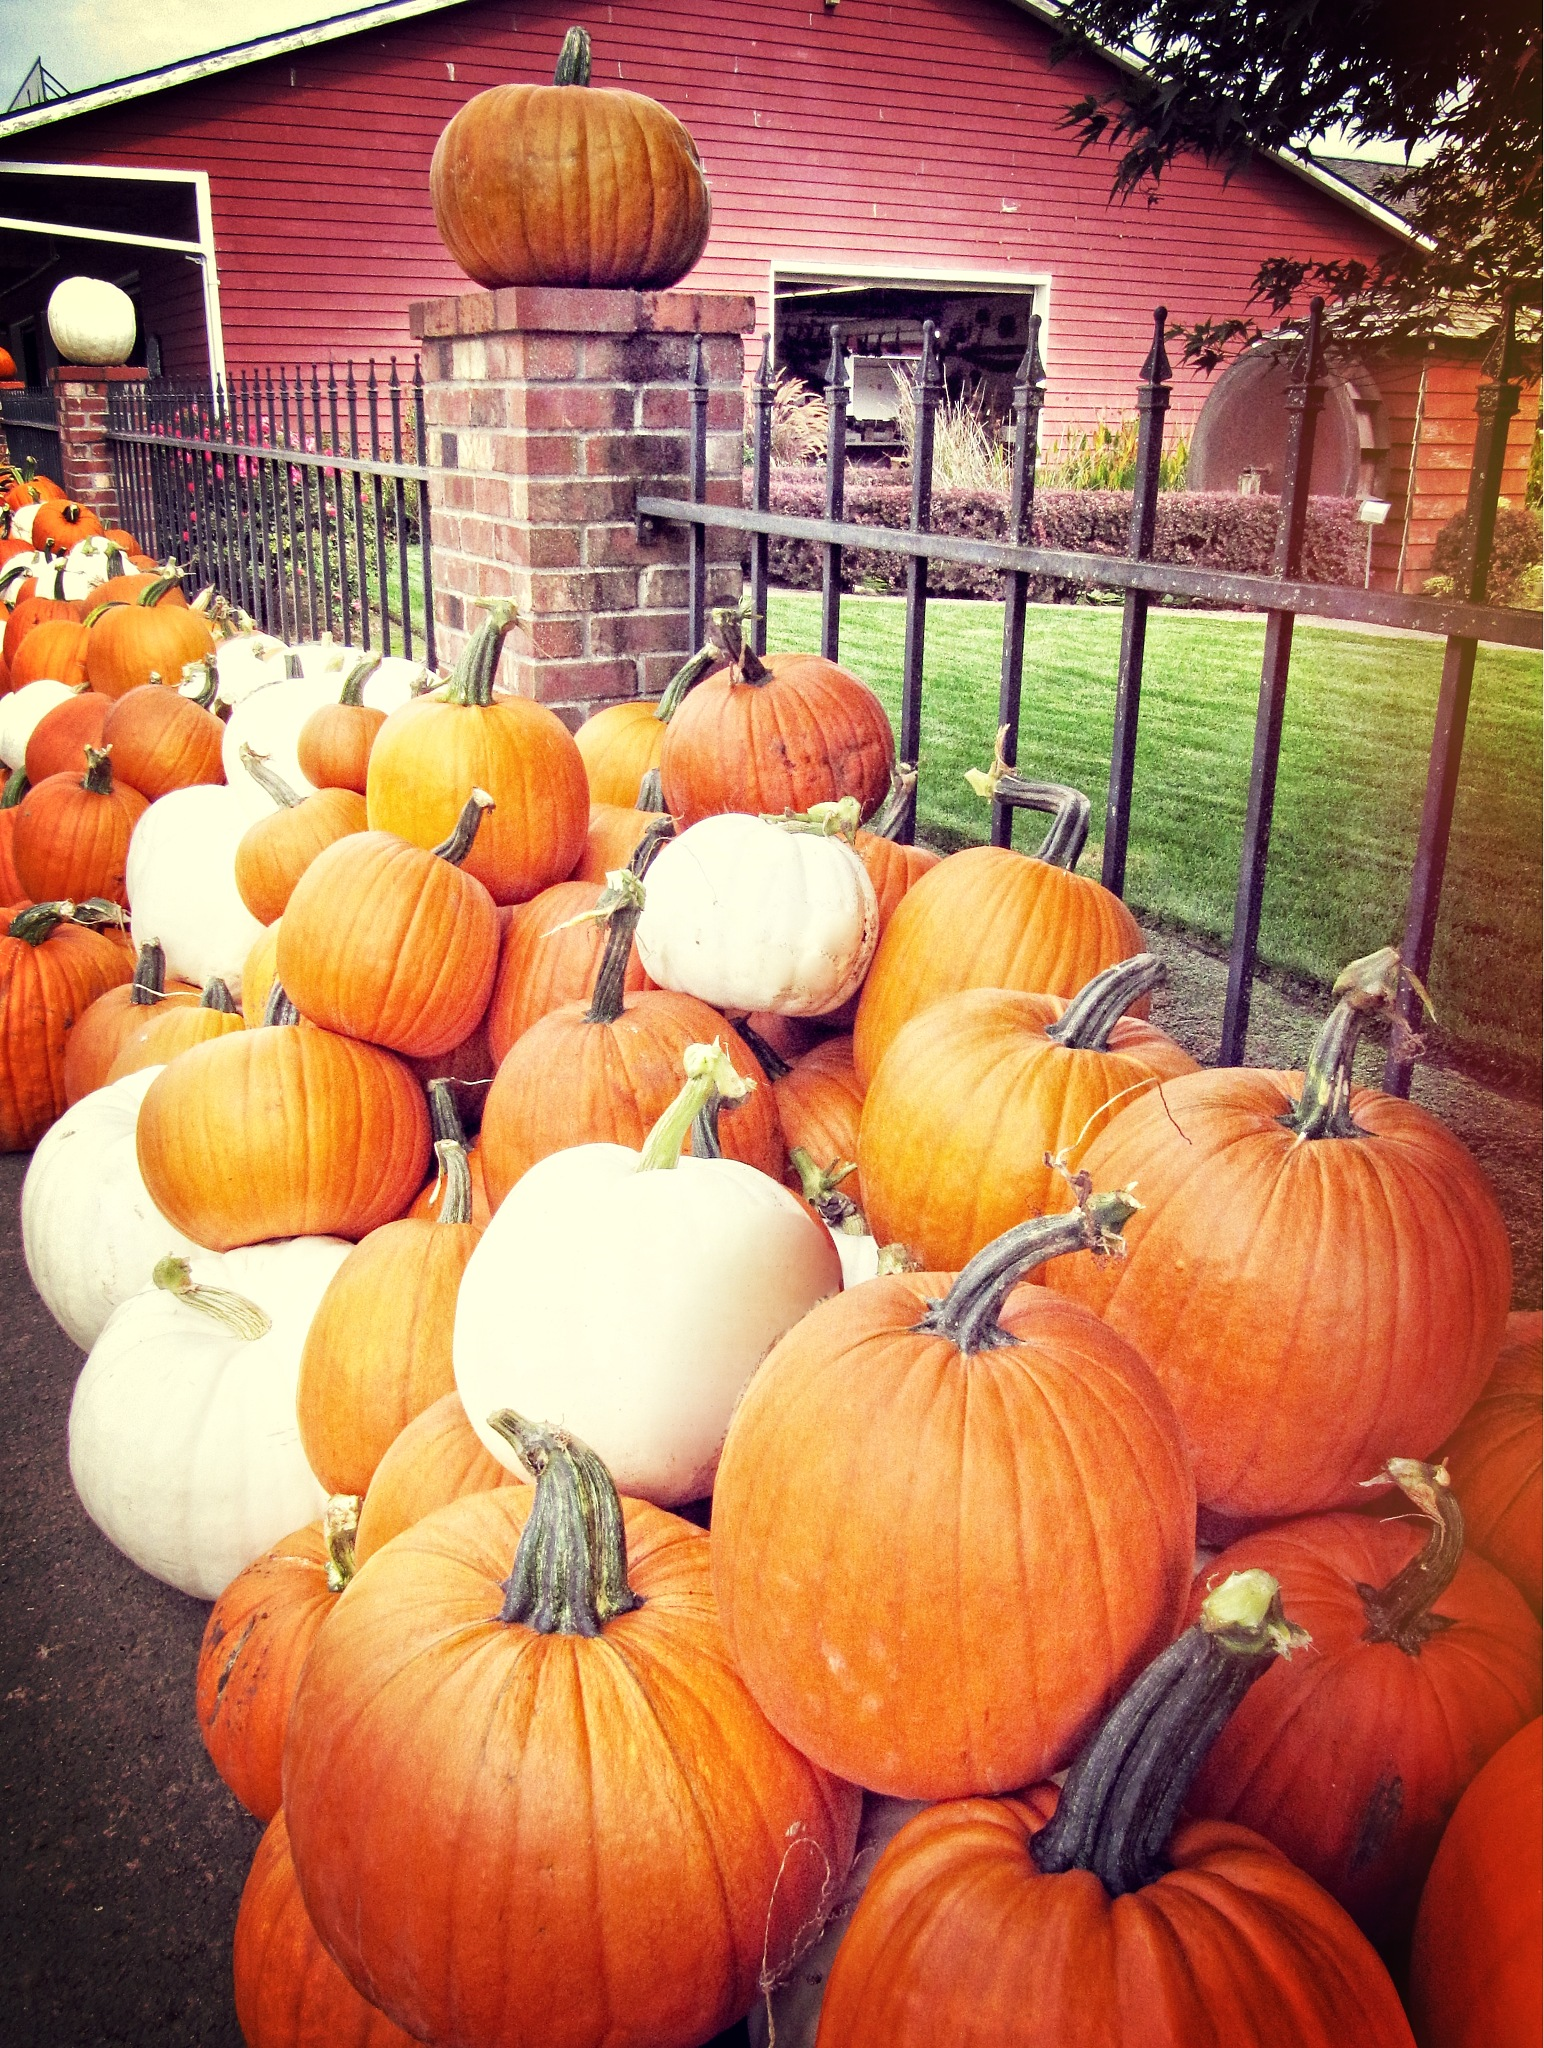 Pumpkins at the Farm by RenfroPhotography